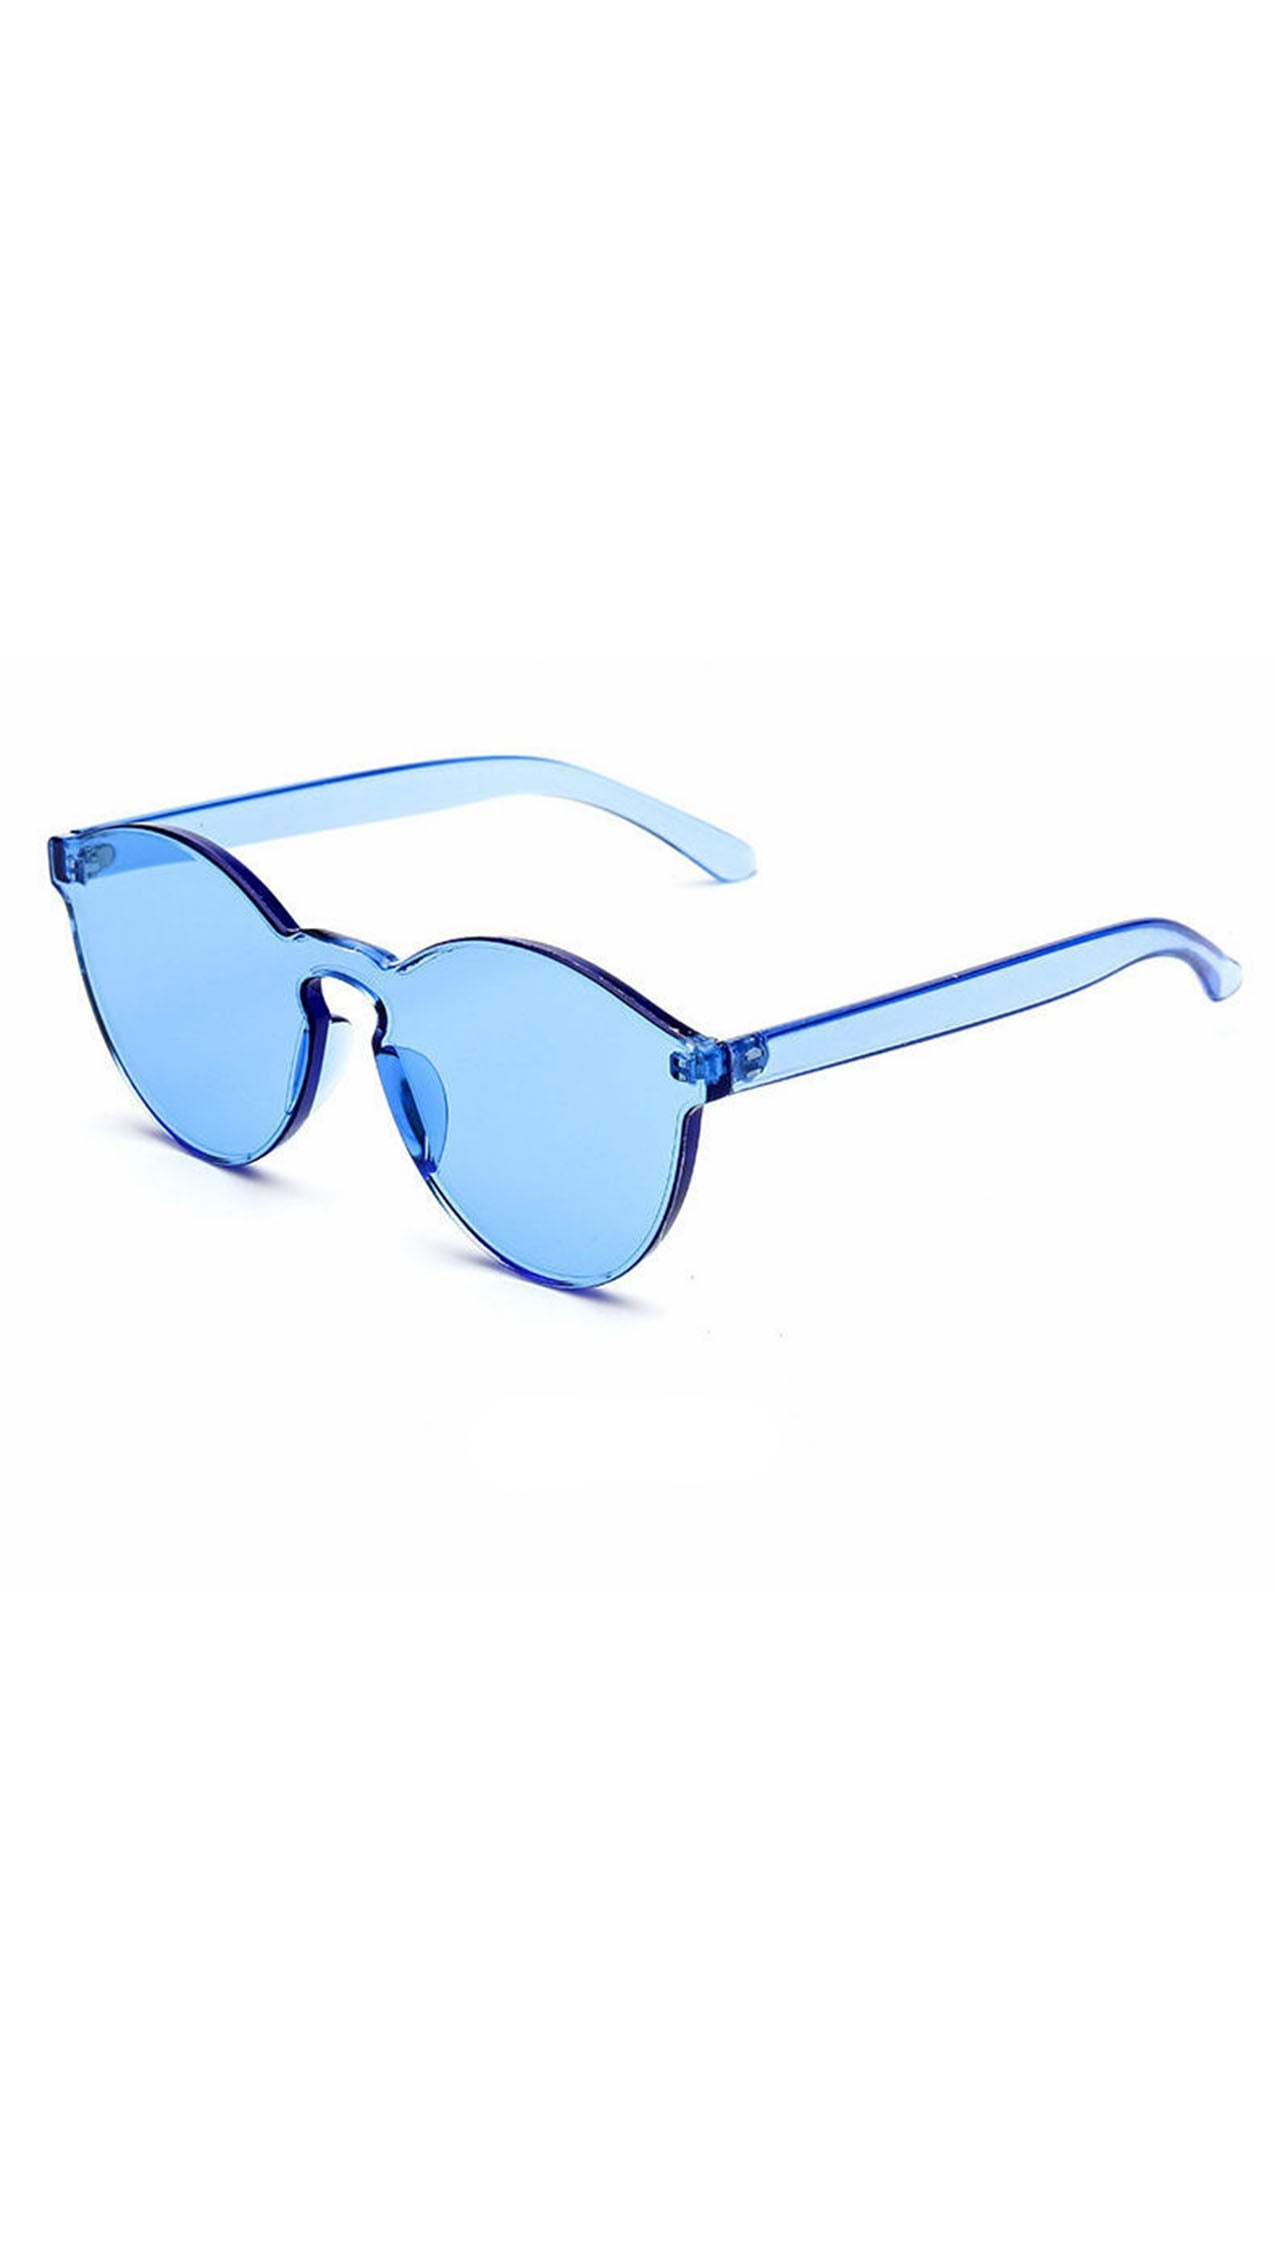 Brixy Blue Shield Sunglass Fashion Eye Wear Shades SHOPAA